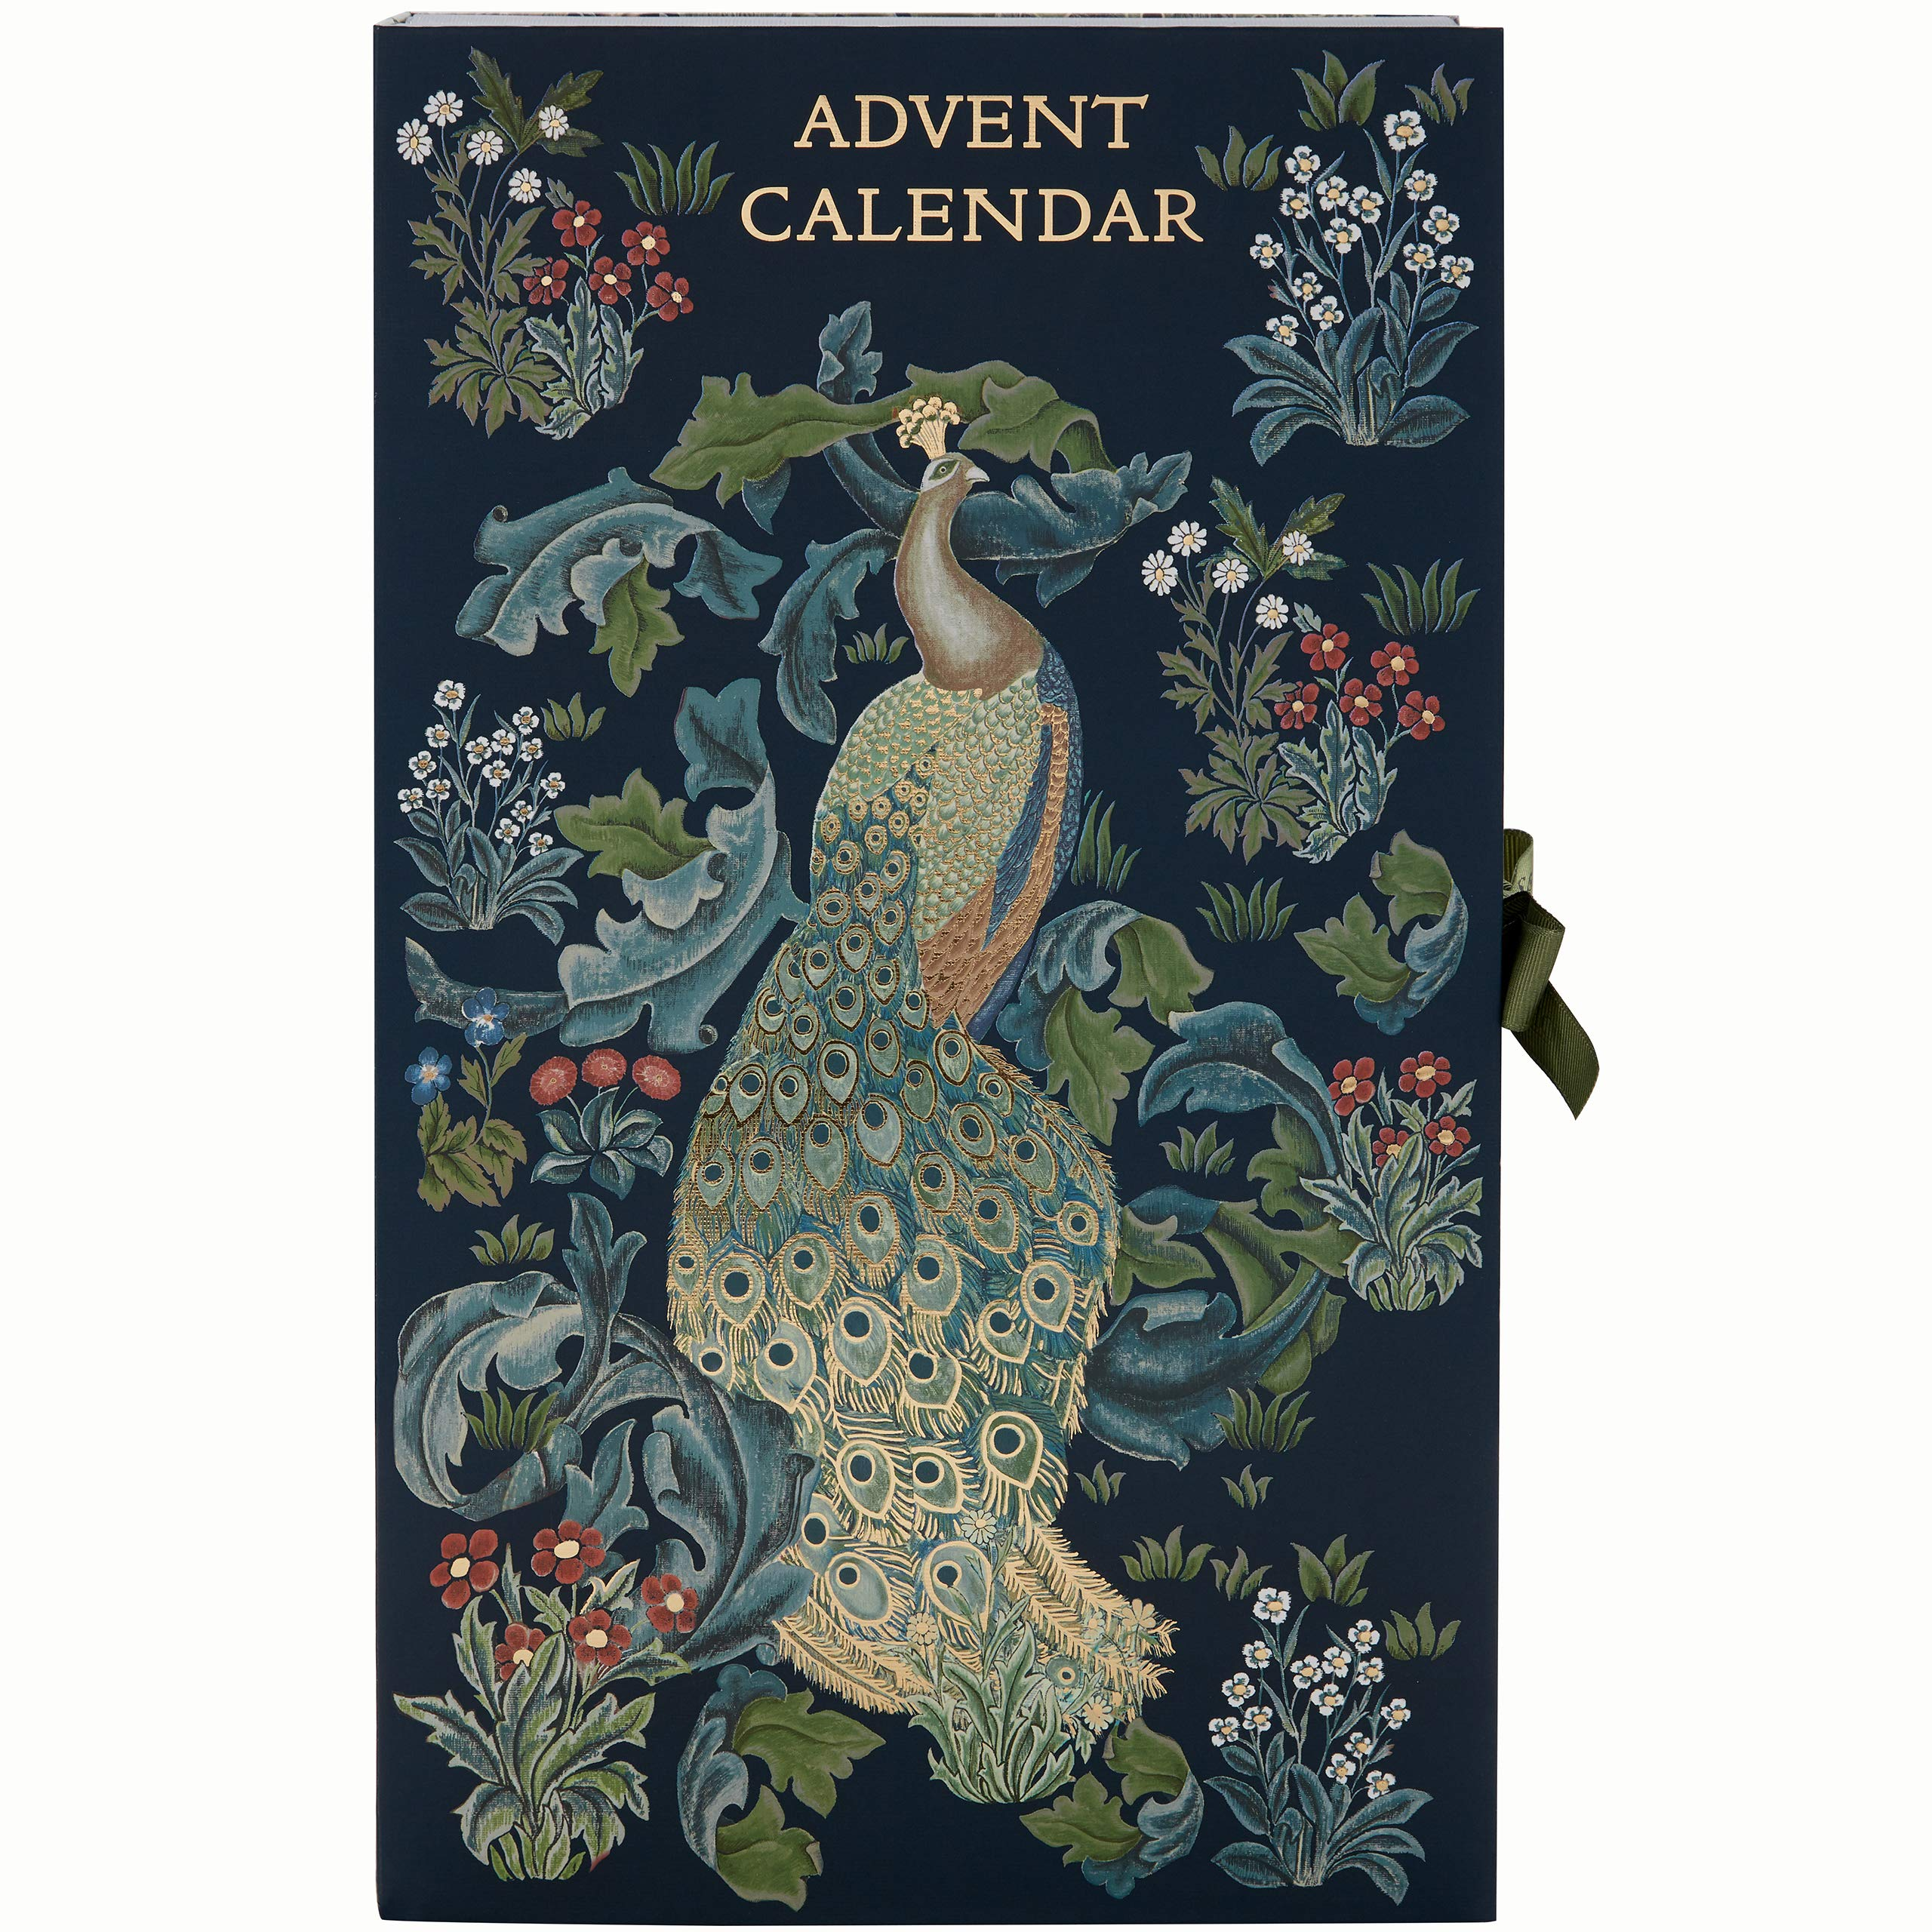 Morris & Co. 2019 Advent Calendar Blue Forest Peacock Print With 24 x Bath & Body Items Assorted Beauty Christmas Presents by Morris & Co. Beauty